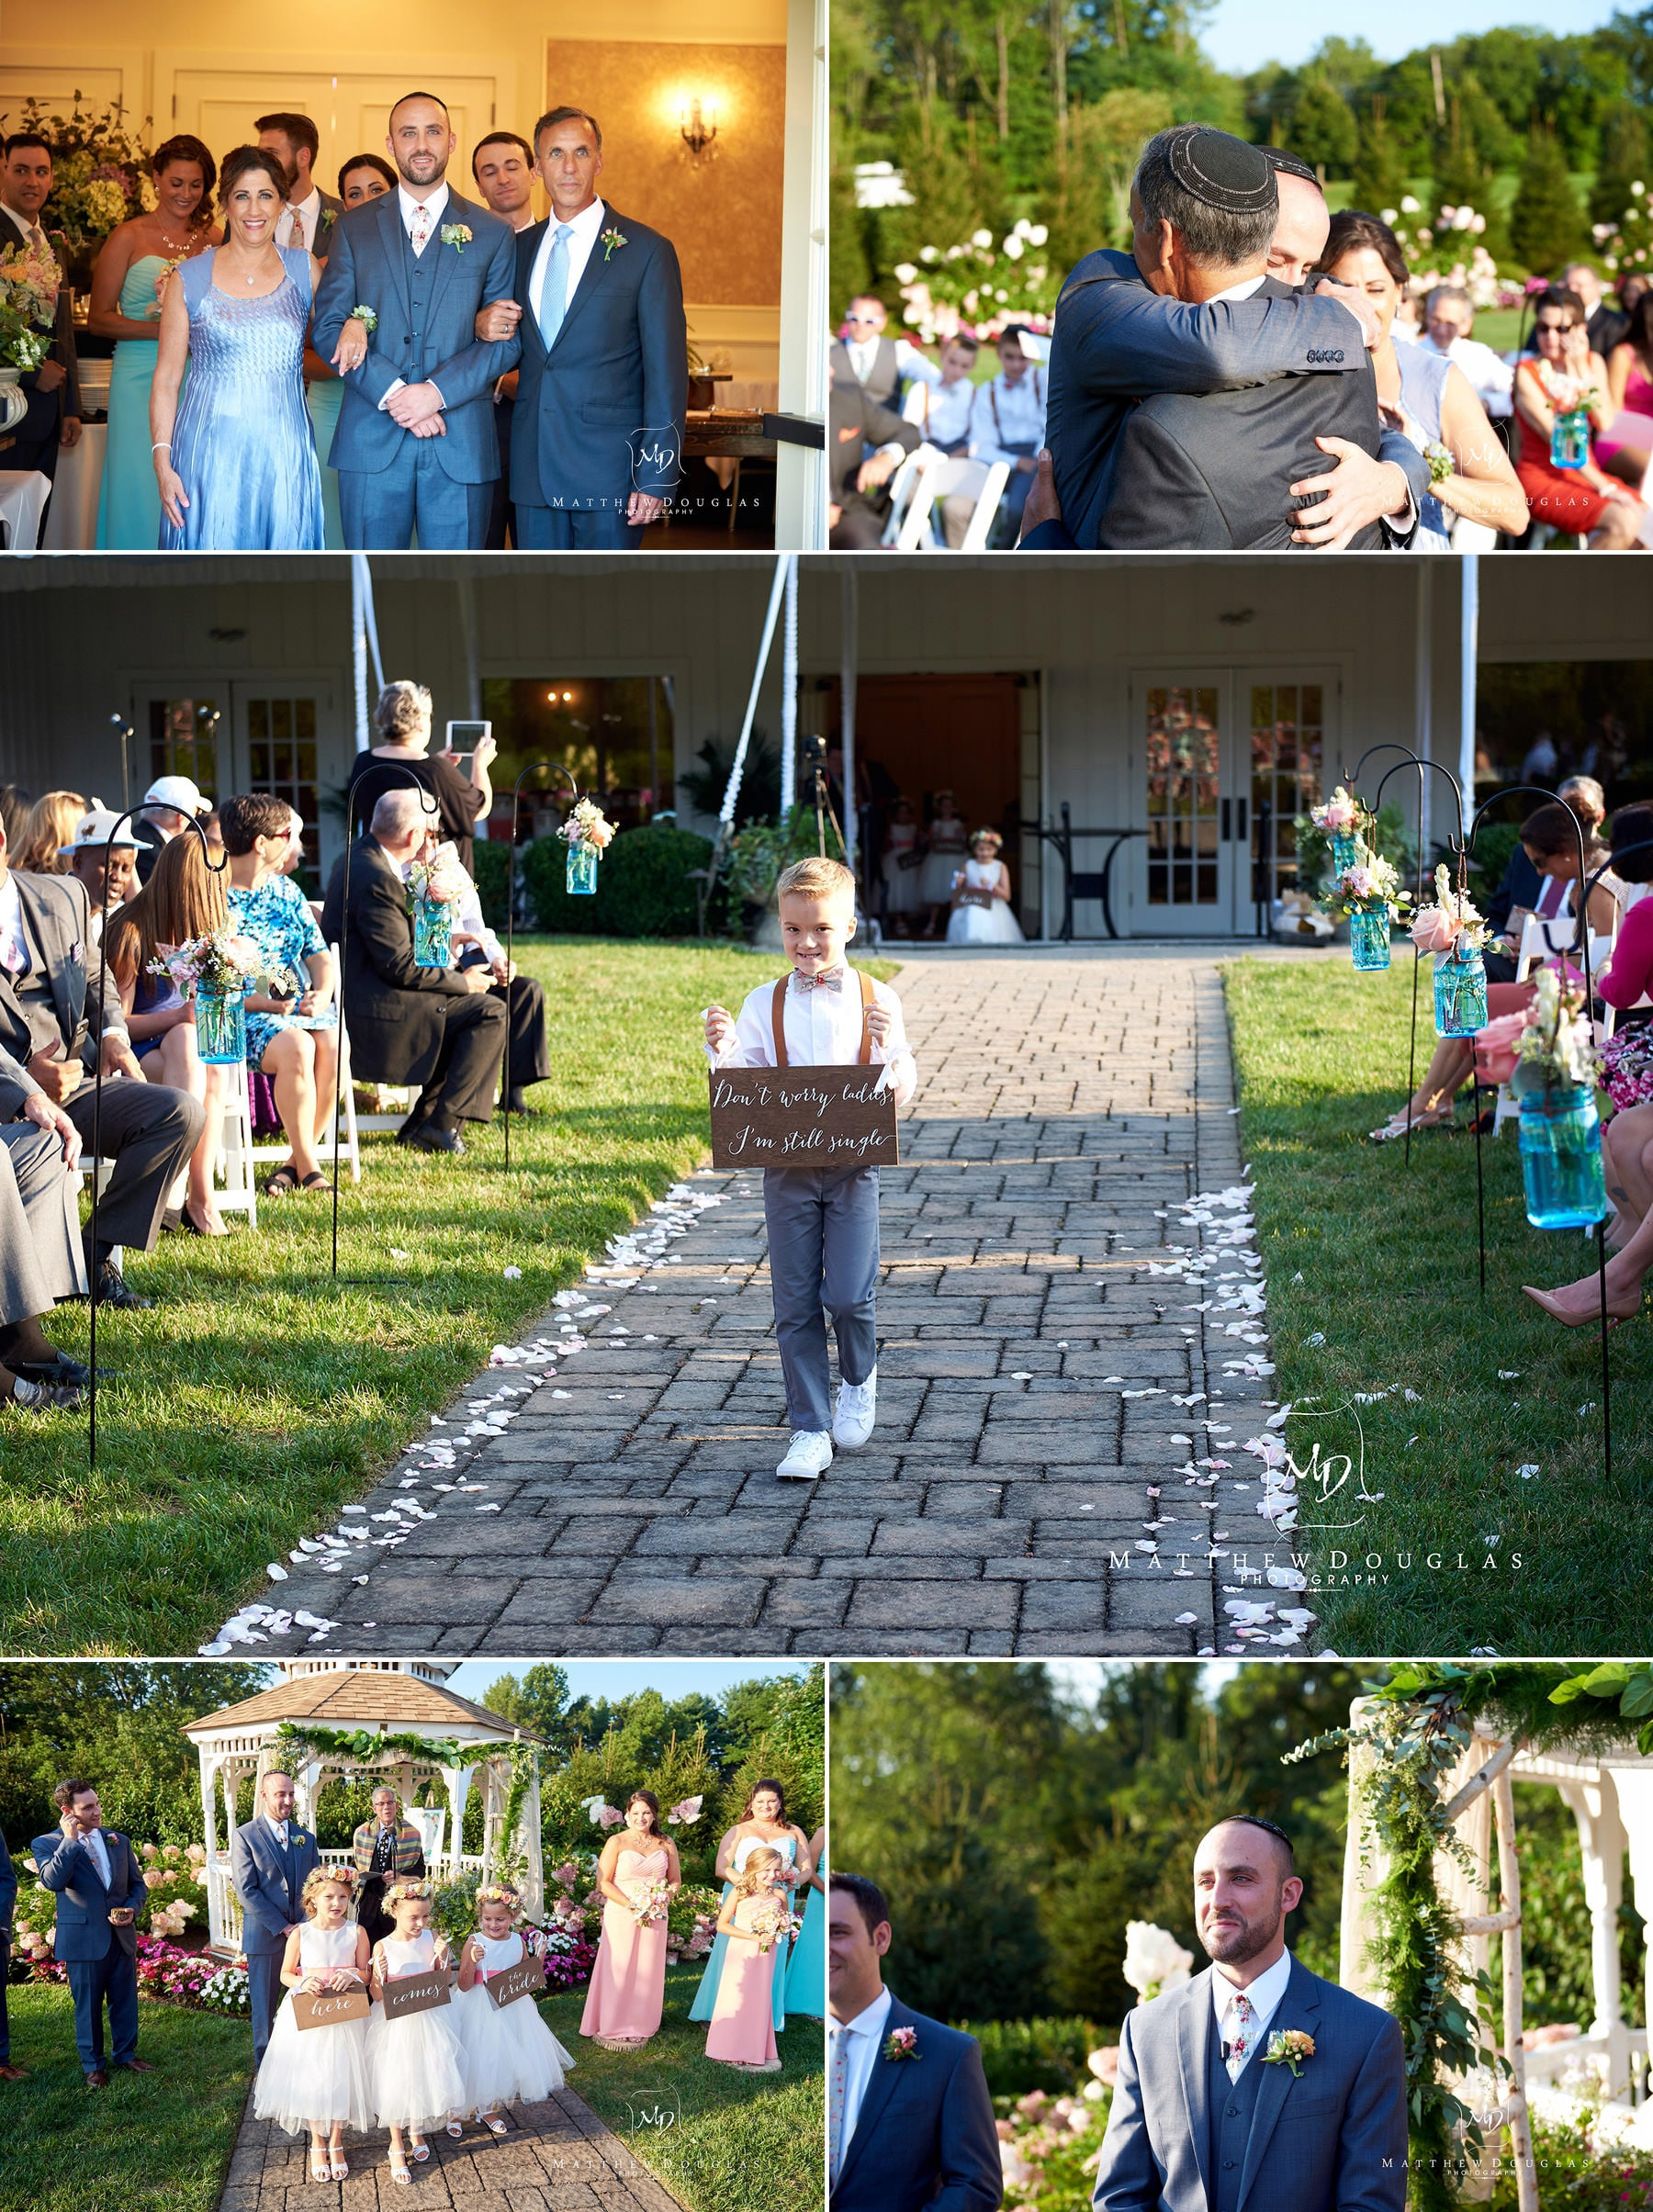 proceeding down the wedding aisle at The Farmhouse at The Grand Colonial